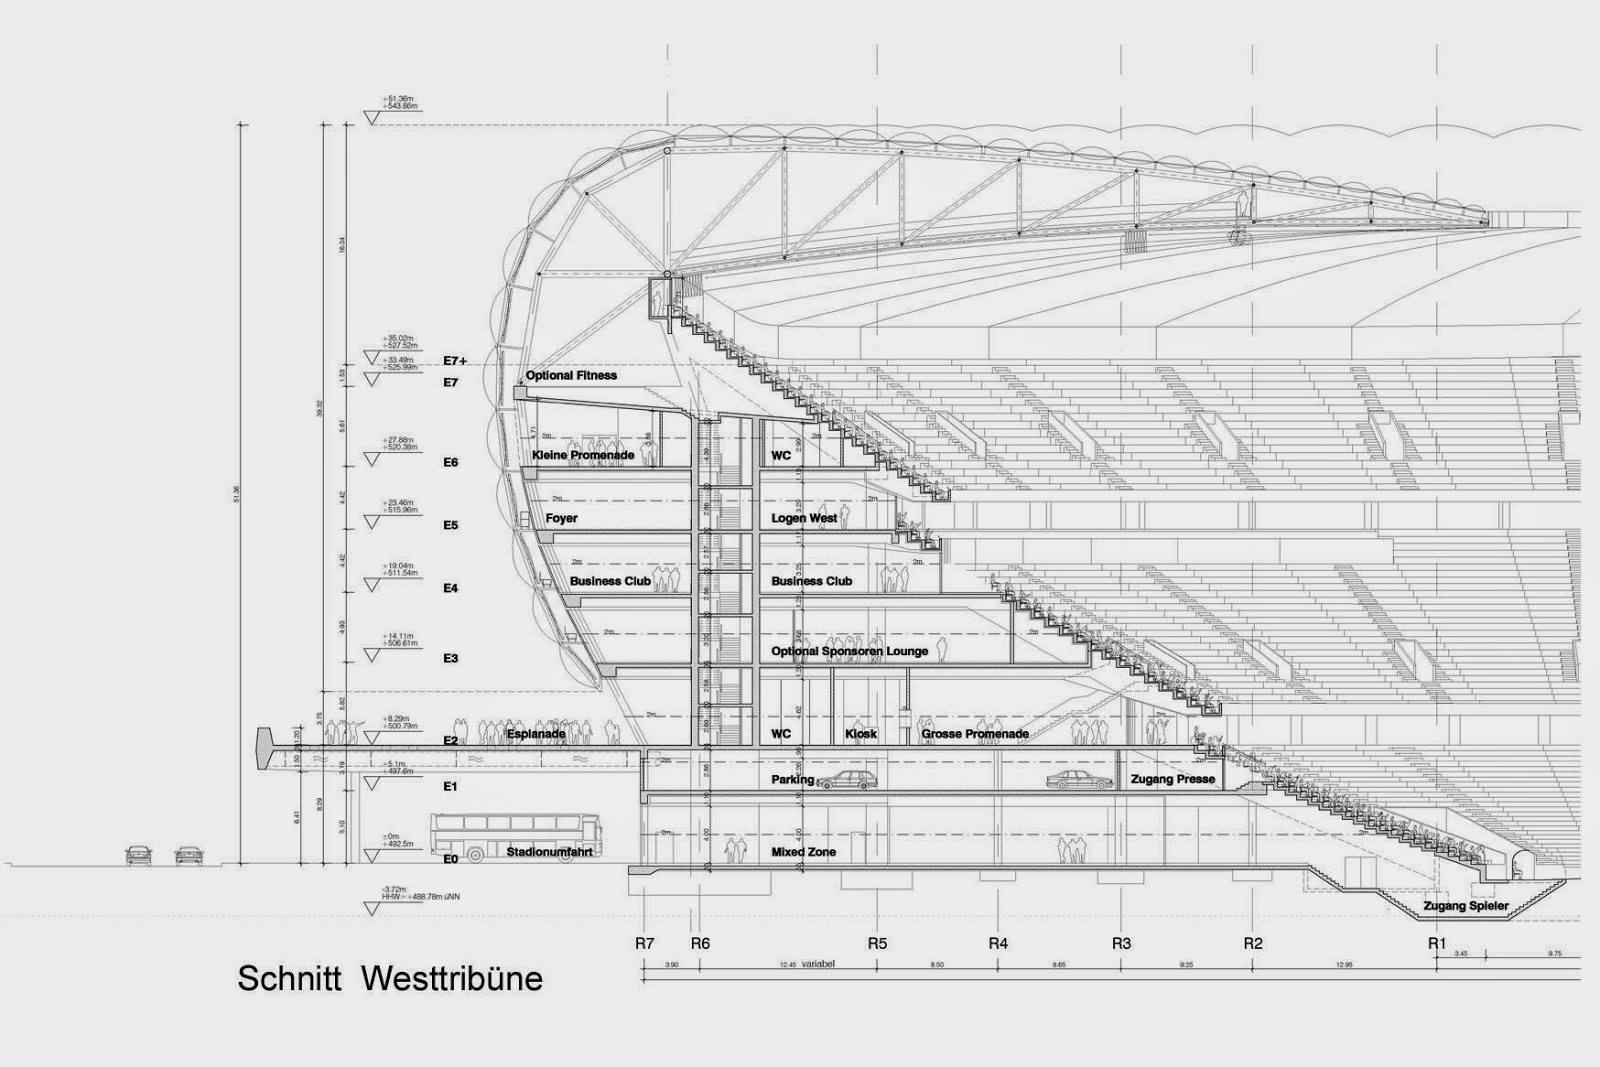 Allianz arena architectural drawings plans designs for Print architectural drawings